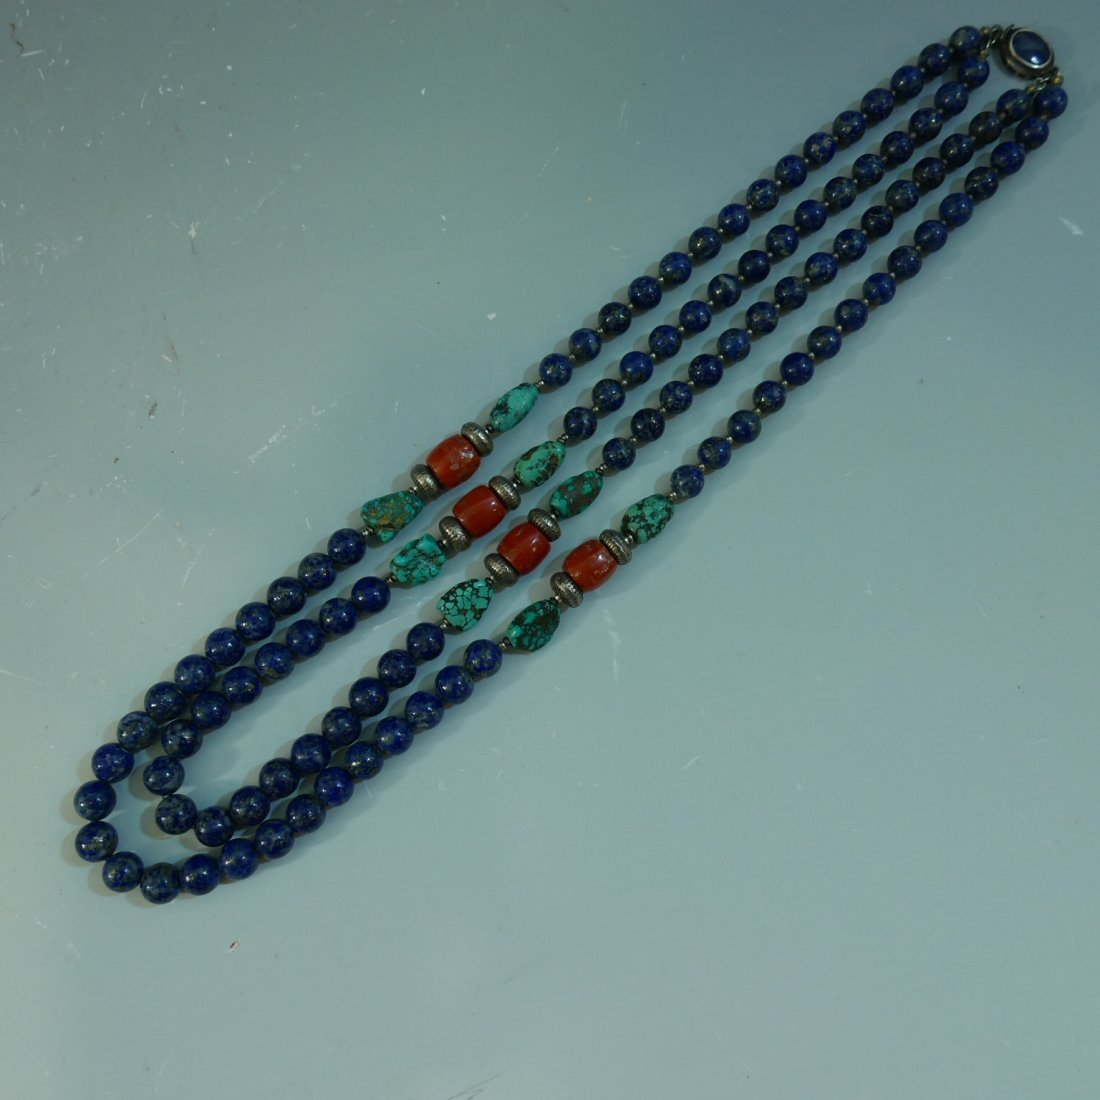 MAGNIFICENT CORAL TURQUOISE & LAPIS LAZULI BEADS